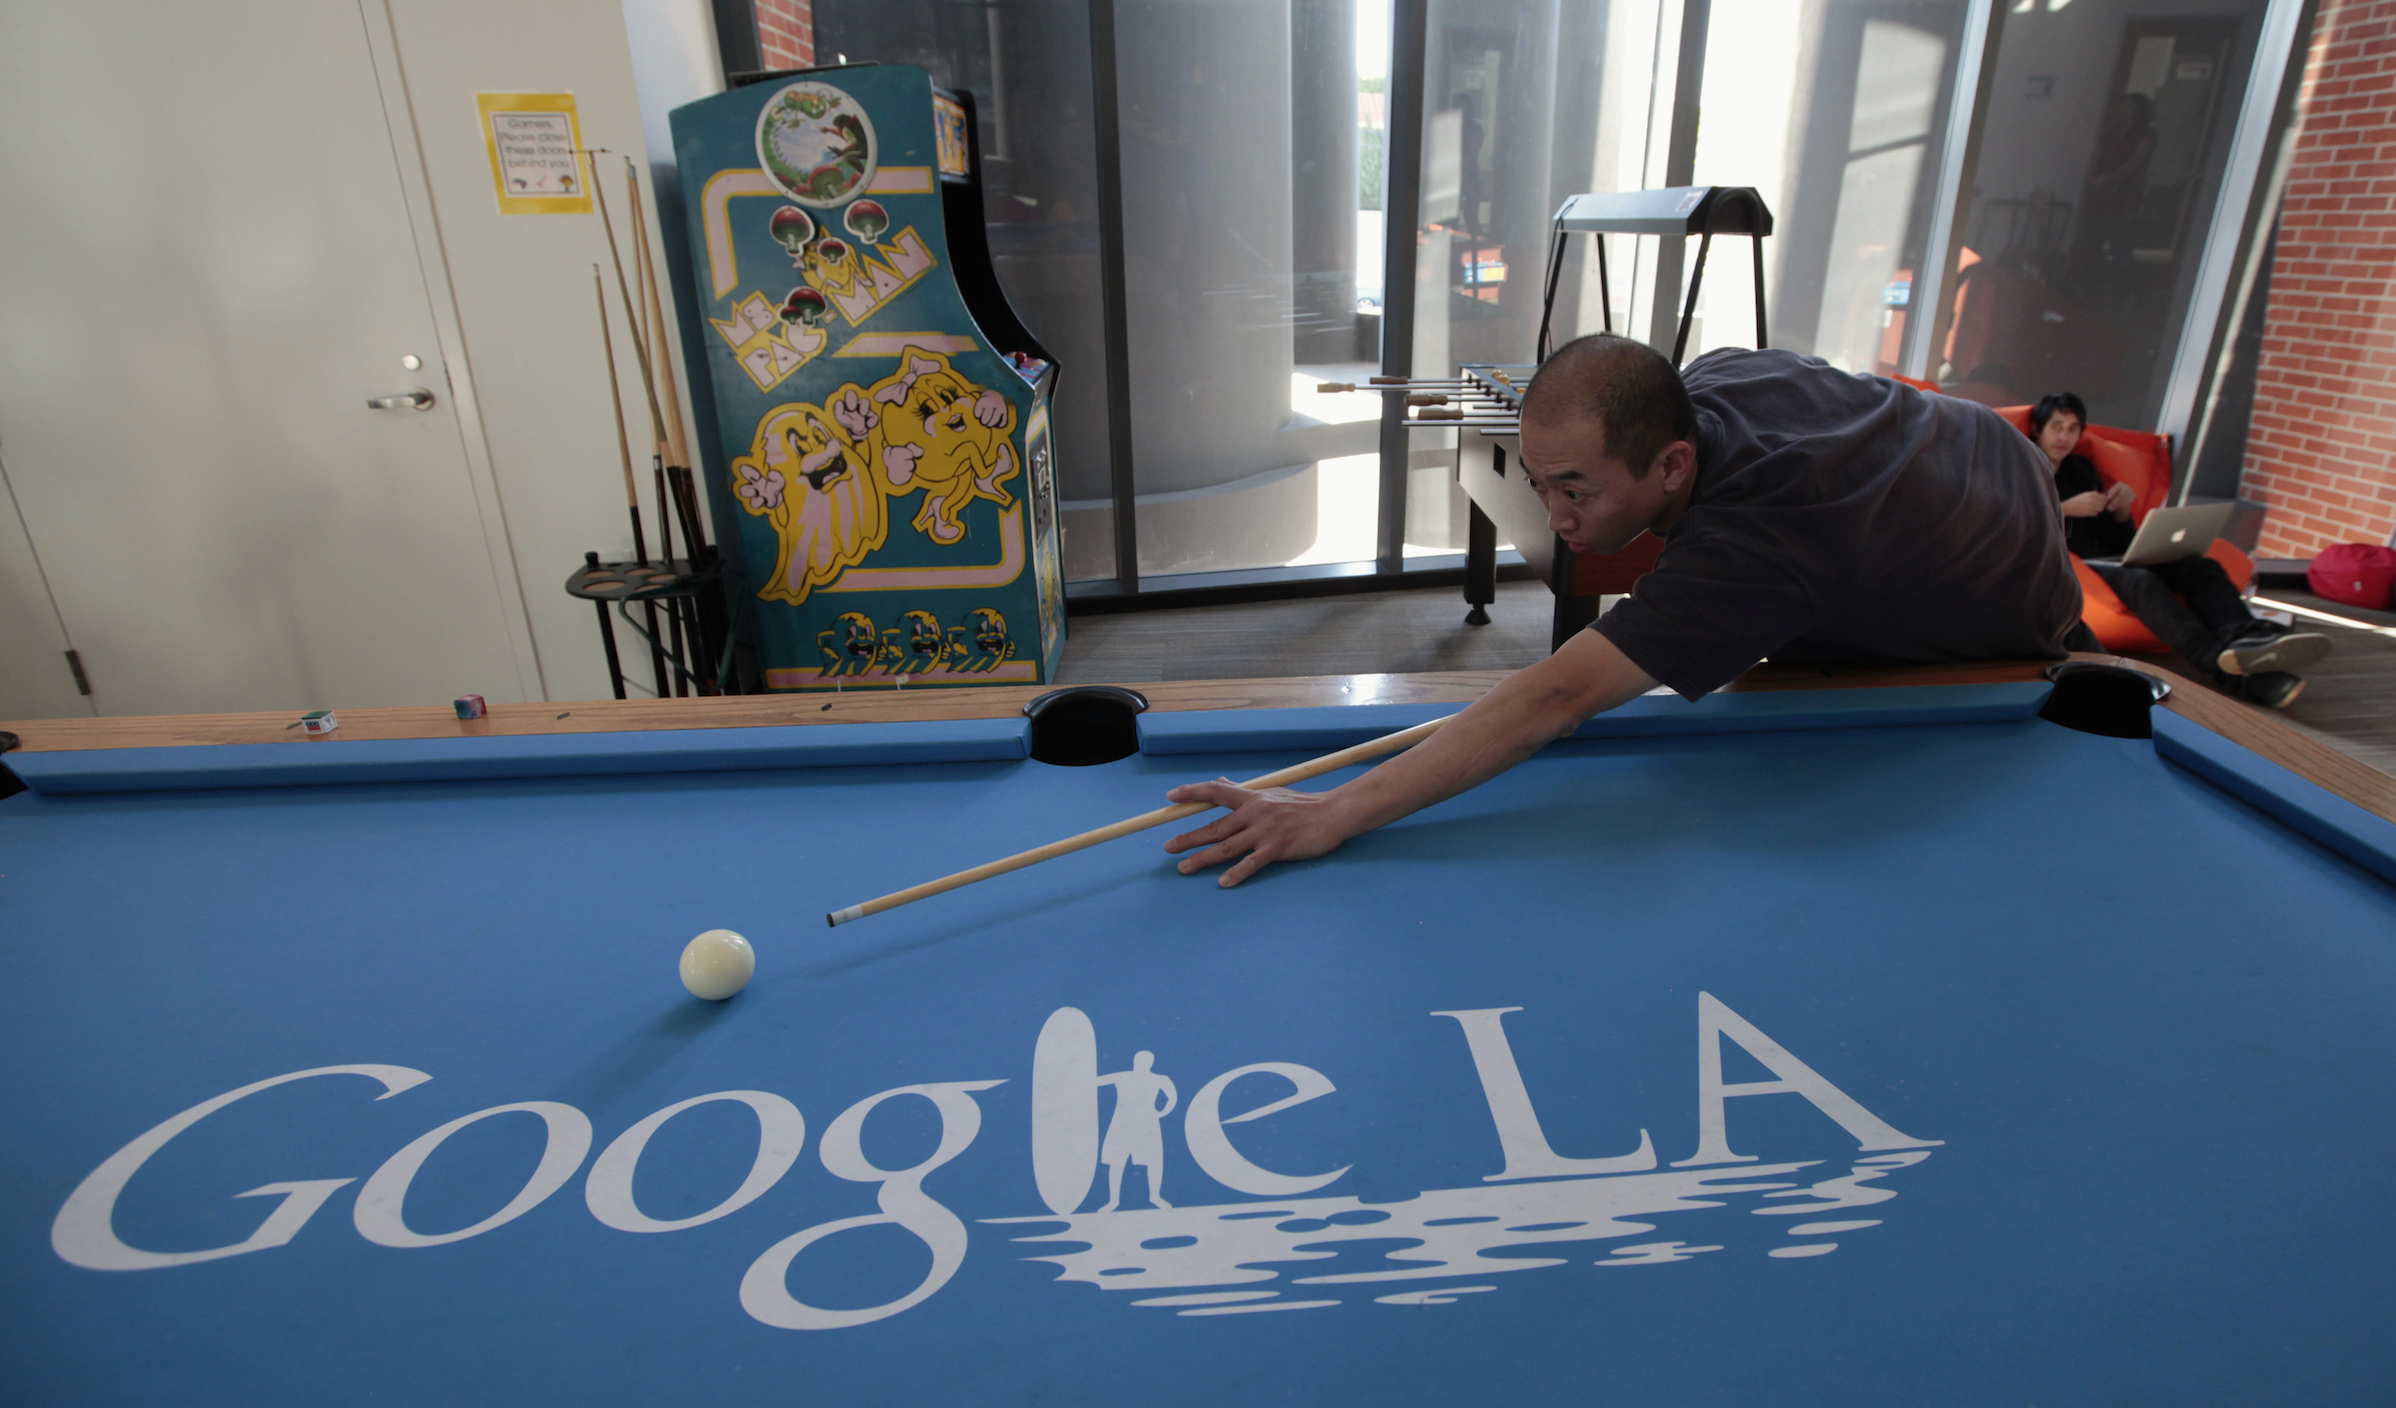 An employee plays pool at the Google campus near Venice Beach, in Los Angeles, California January 13, 2012. The 100,000 square-foot campus was designed by architect Frank Gehry, and includes an entrance through an iconic pair of giant binoculars designed by Claes Oldenburg and Coosje van Bruggen. Around 500 employees develop video advertising for YouTube, parts of the Google+ social network and the Chrome Web browser at the site. REUTERS/Lucy Nicholson (UNITED STATES - Tags: SCIENCE TECHNOLOGY BUSINESS SOCIETY) - RTR2W9CE